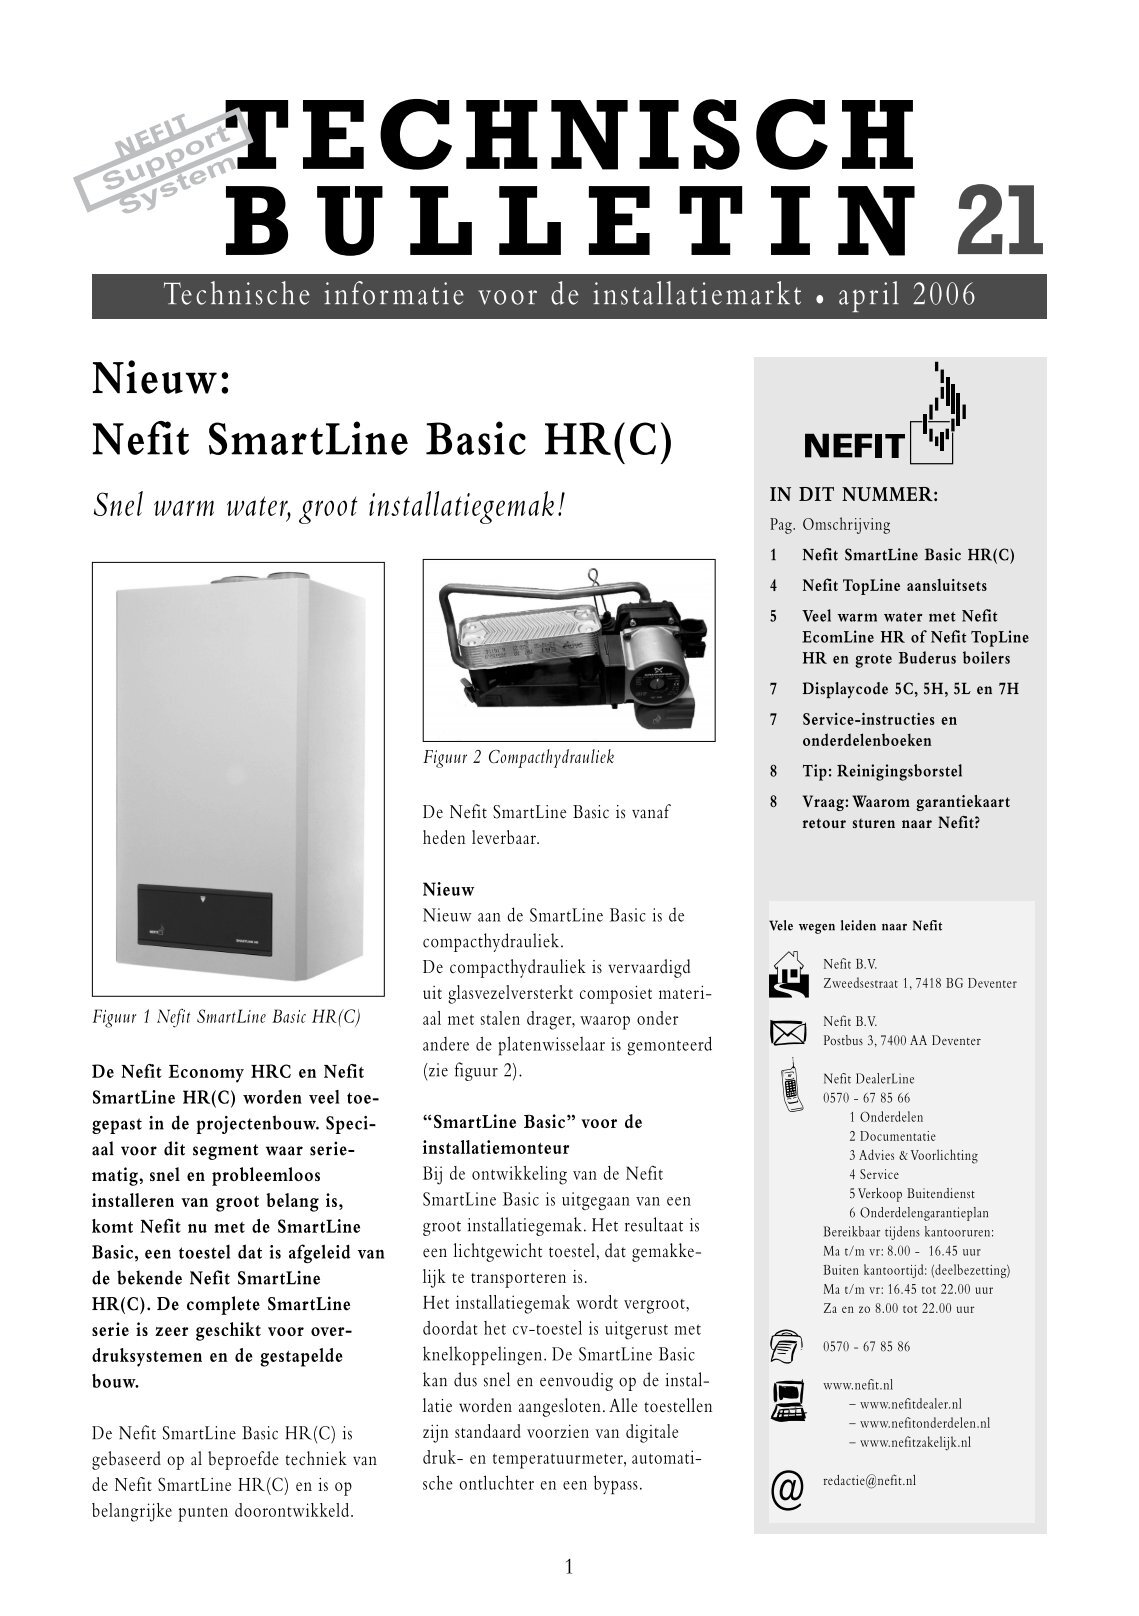 Cv Knelkoppelingen 160 Free Magazines From Nefit Nl Resource Bosch Com